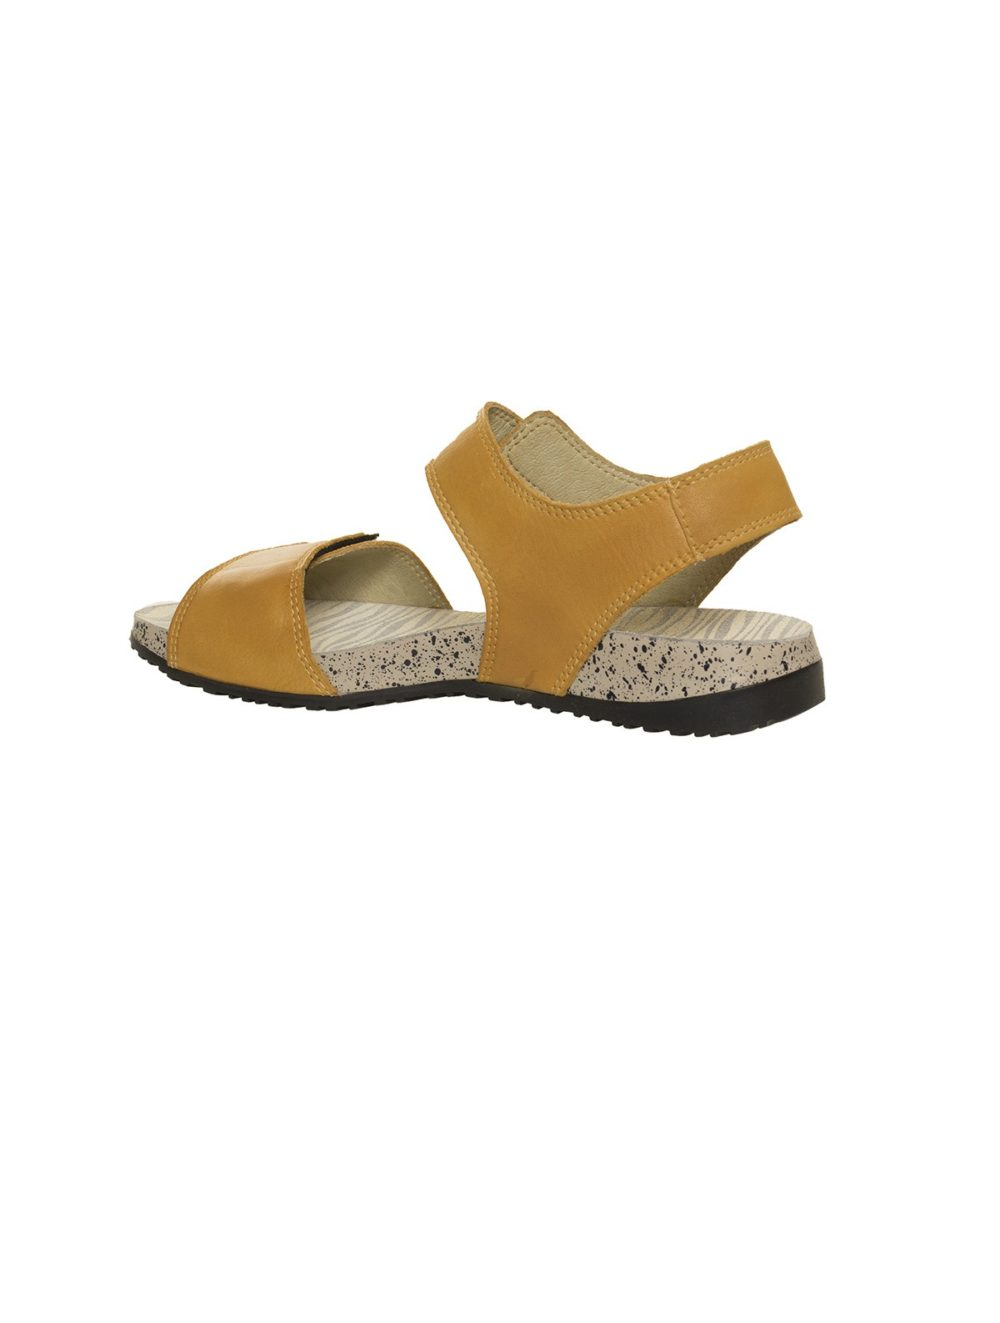 Kiva Sandal Softinos Katie Kerr Women's Clothing